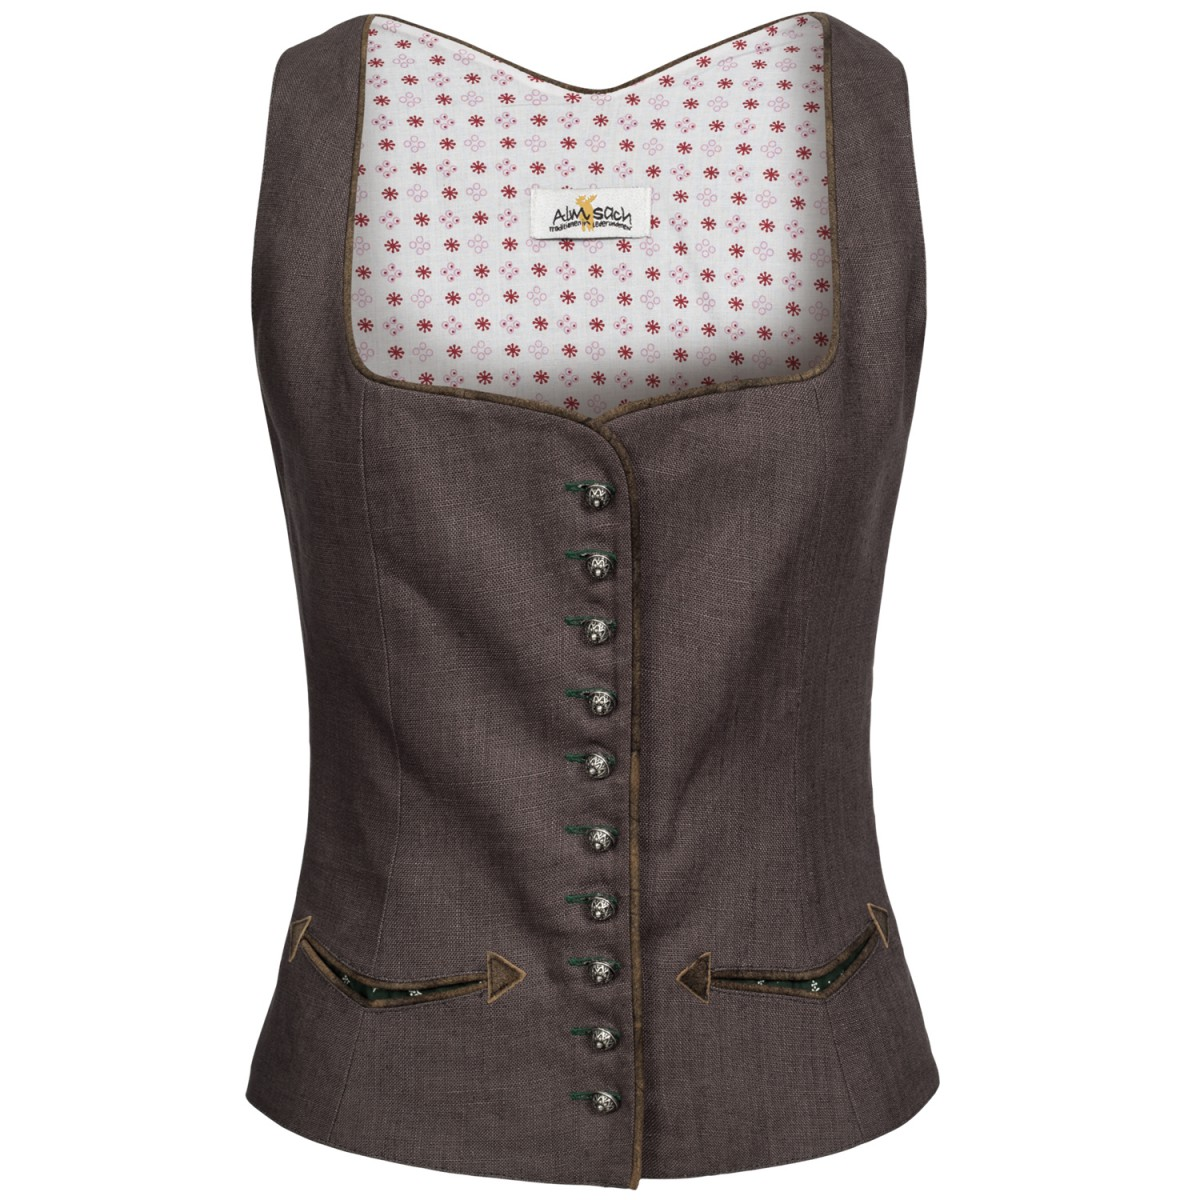 Steampunk shirt diy